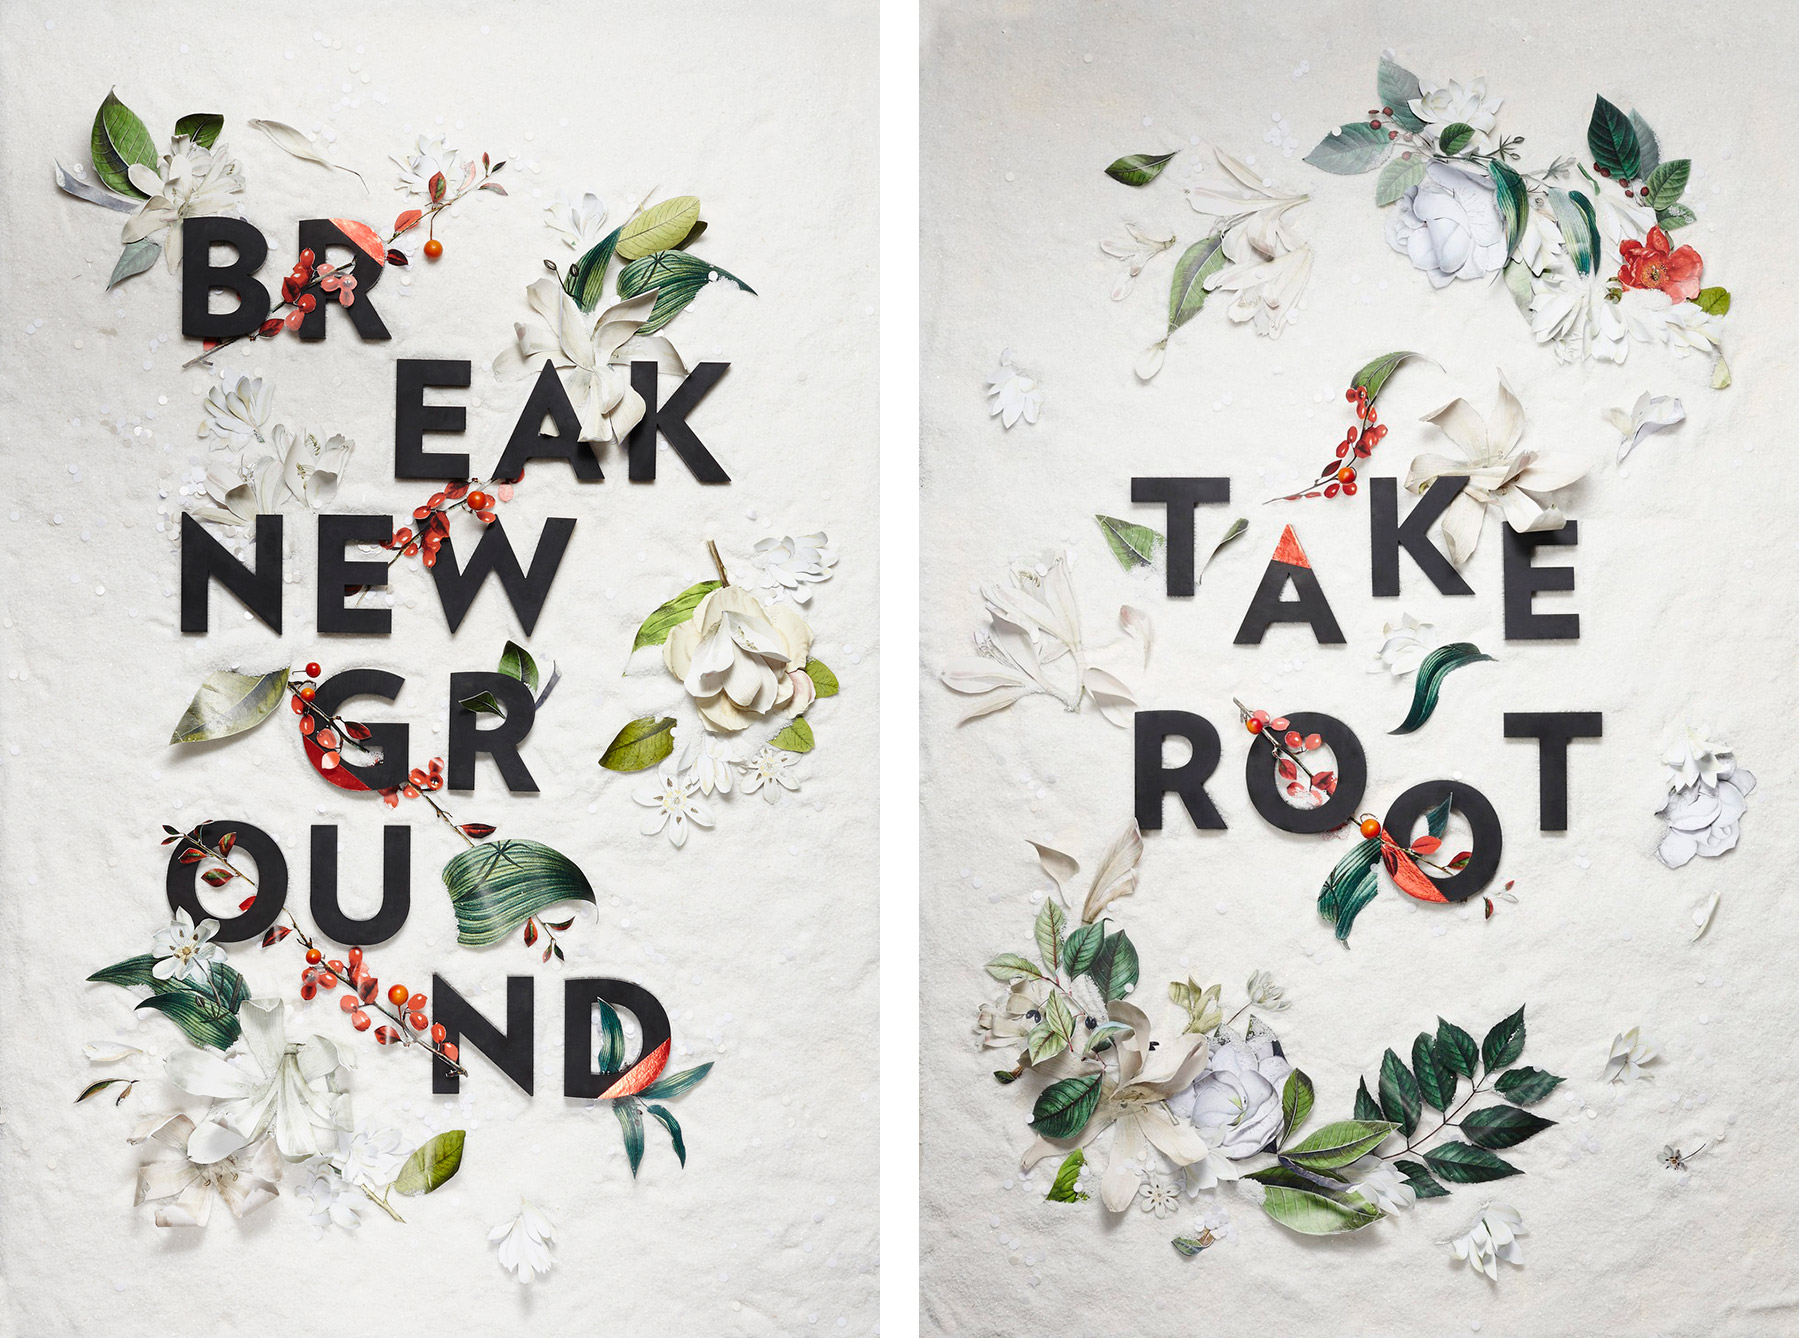 Florally-decorated type by Nicole Licht. Left: 'break new ground', right: 'take root'